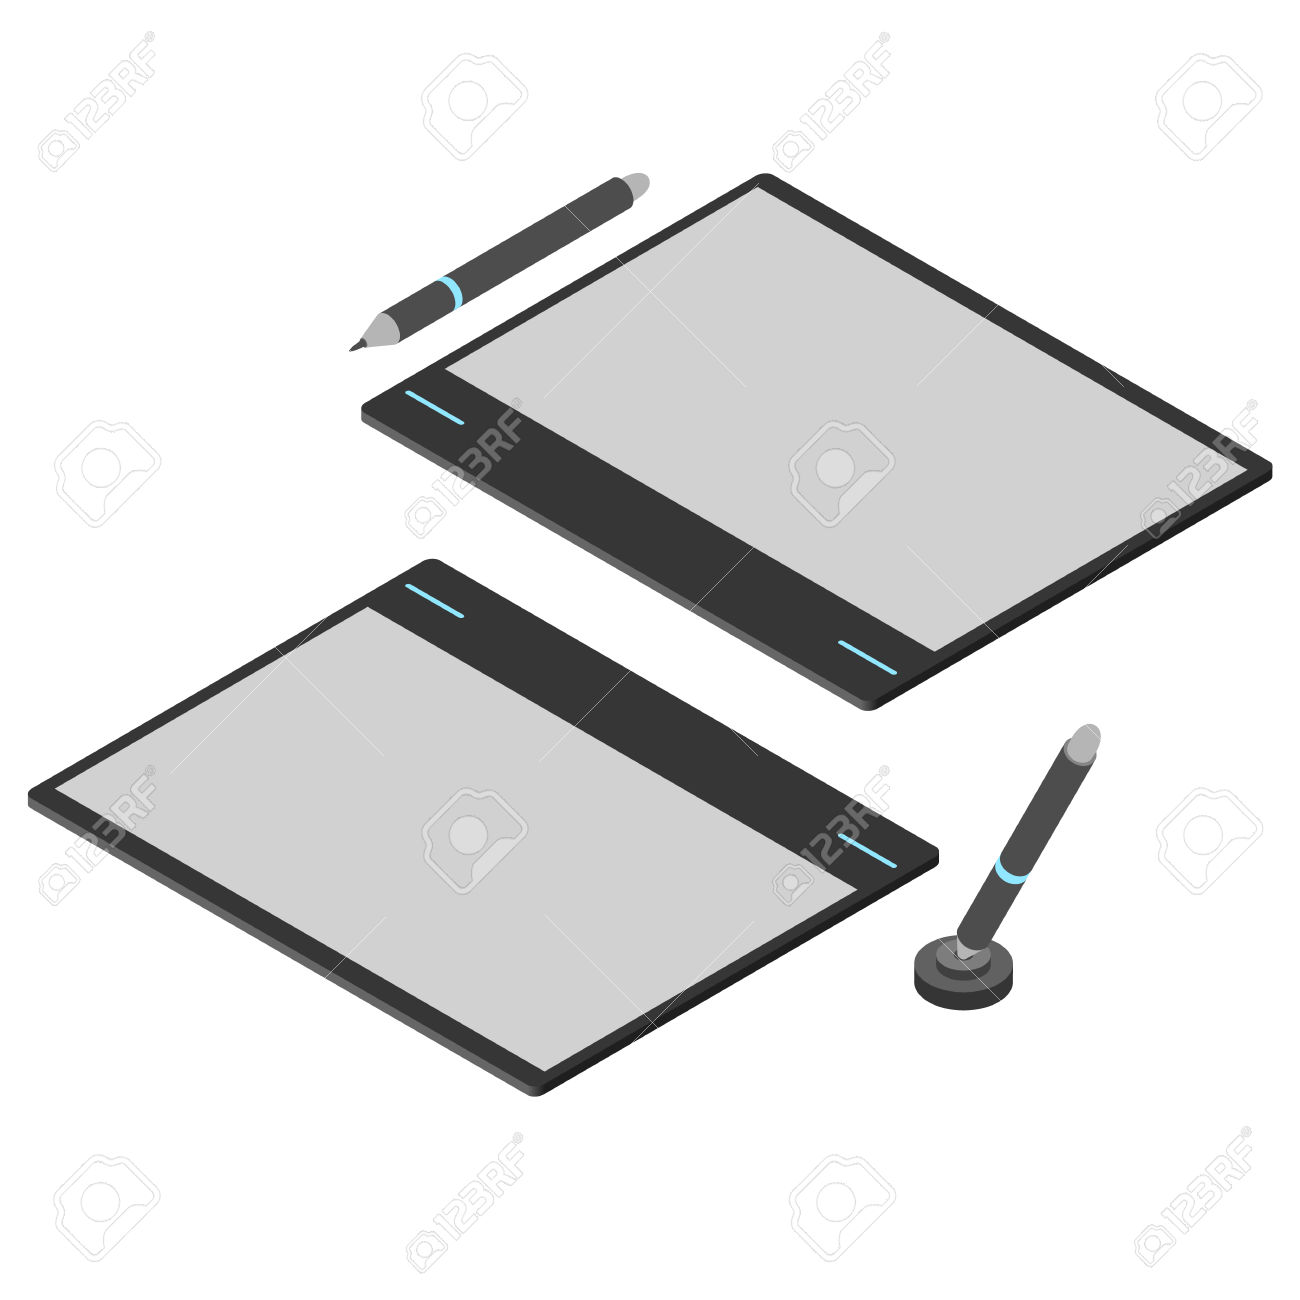 Graphics Tablet. Flat Isometric. Drawing Tool For A Computer.